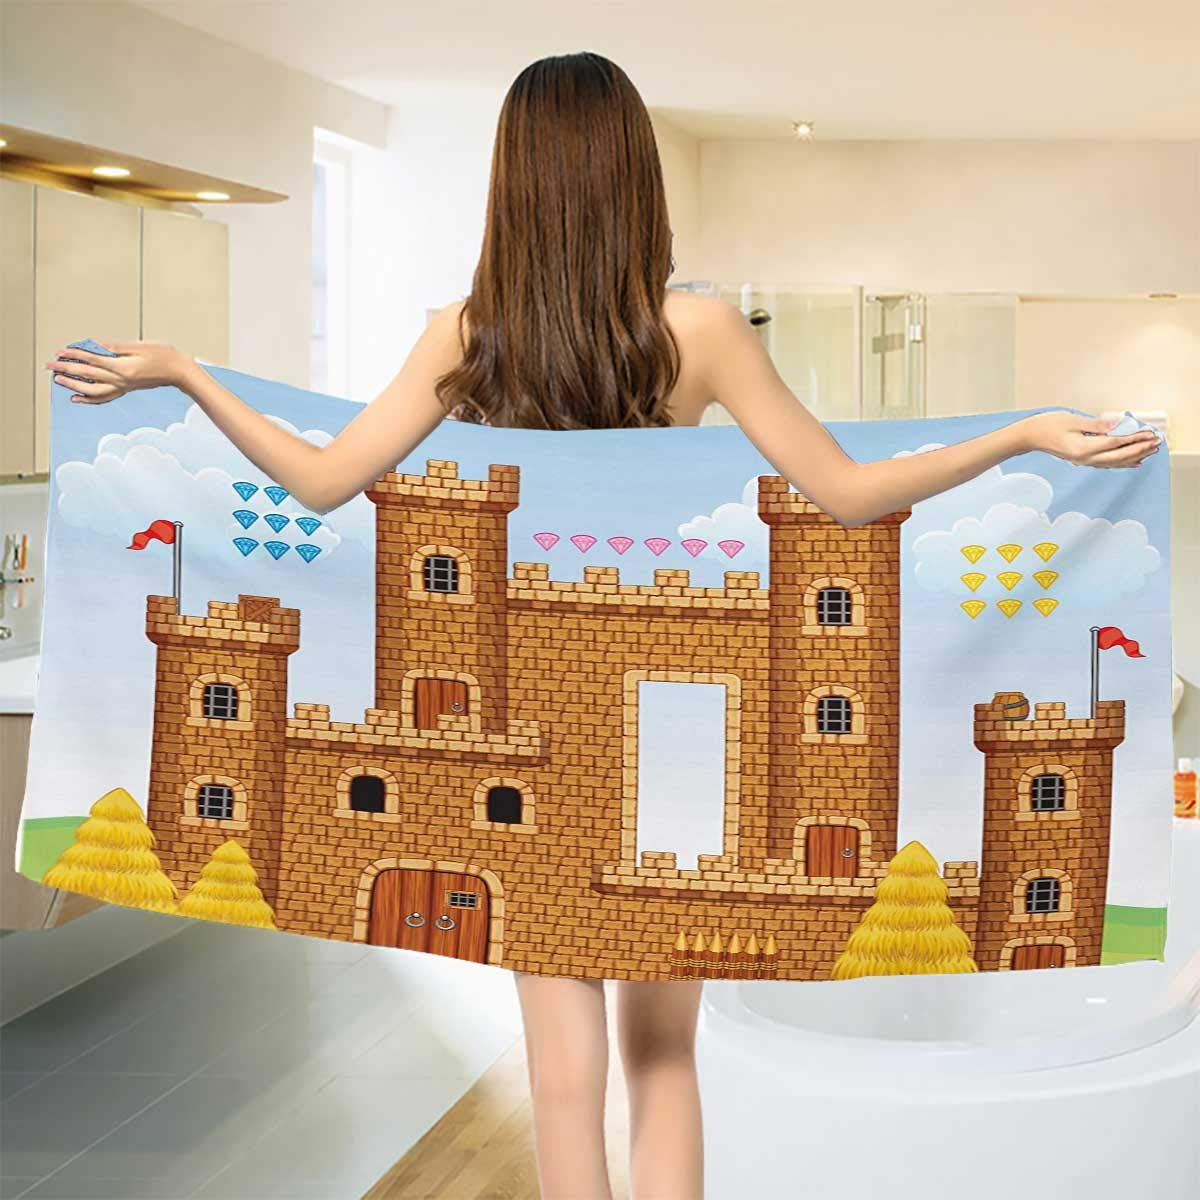 Children,Bath Towel,Video Game Background with Castle Leisure Hobby Activity Kids Youth Design,Customized Bath Towels,Pale Caramel Blue Size: W 19.5'' x L 39.5''